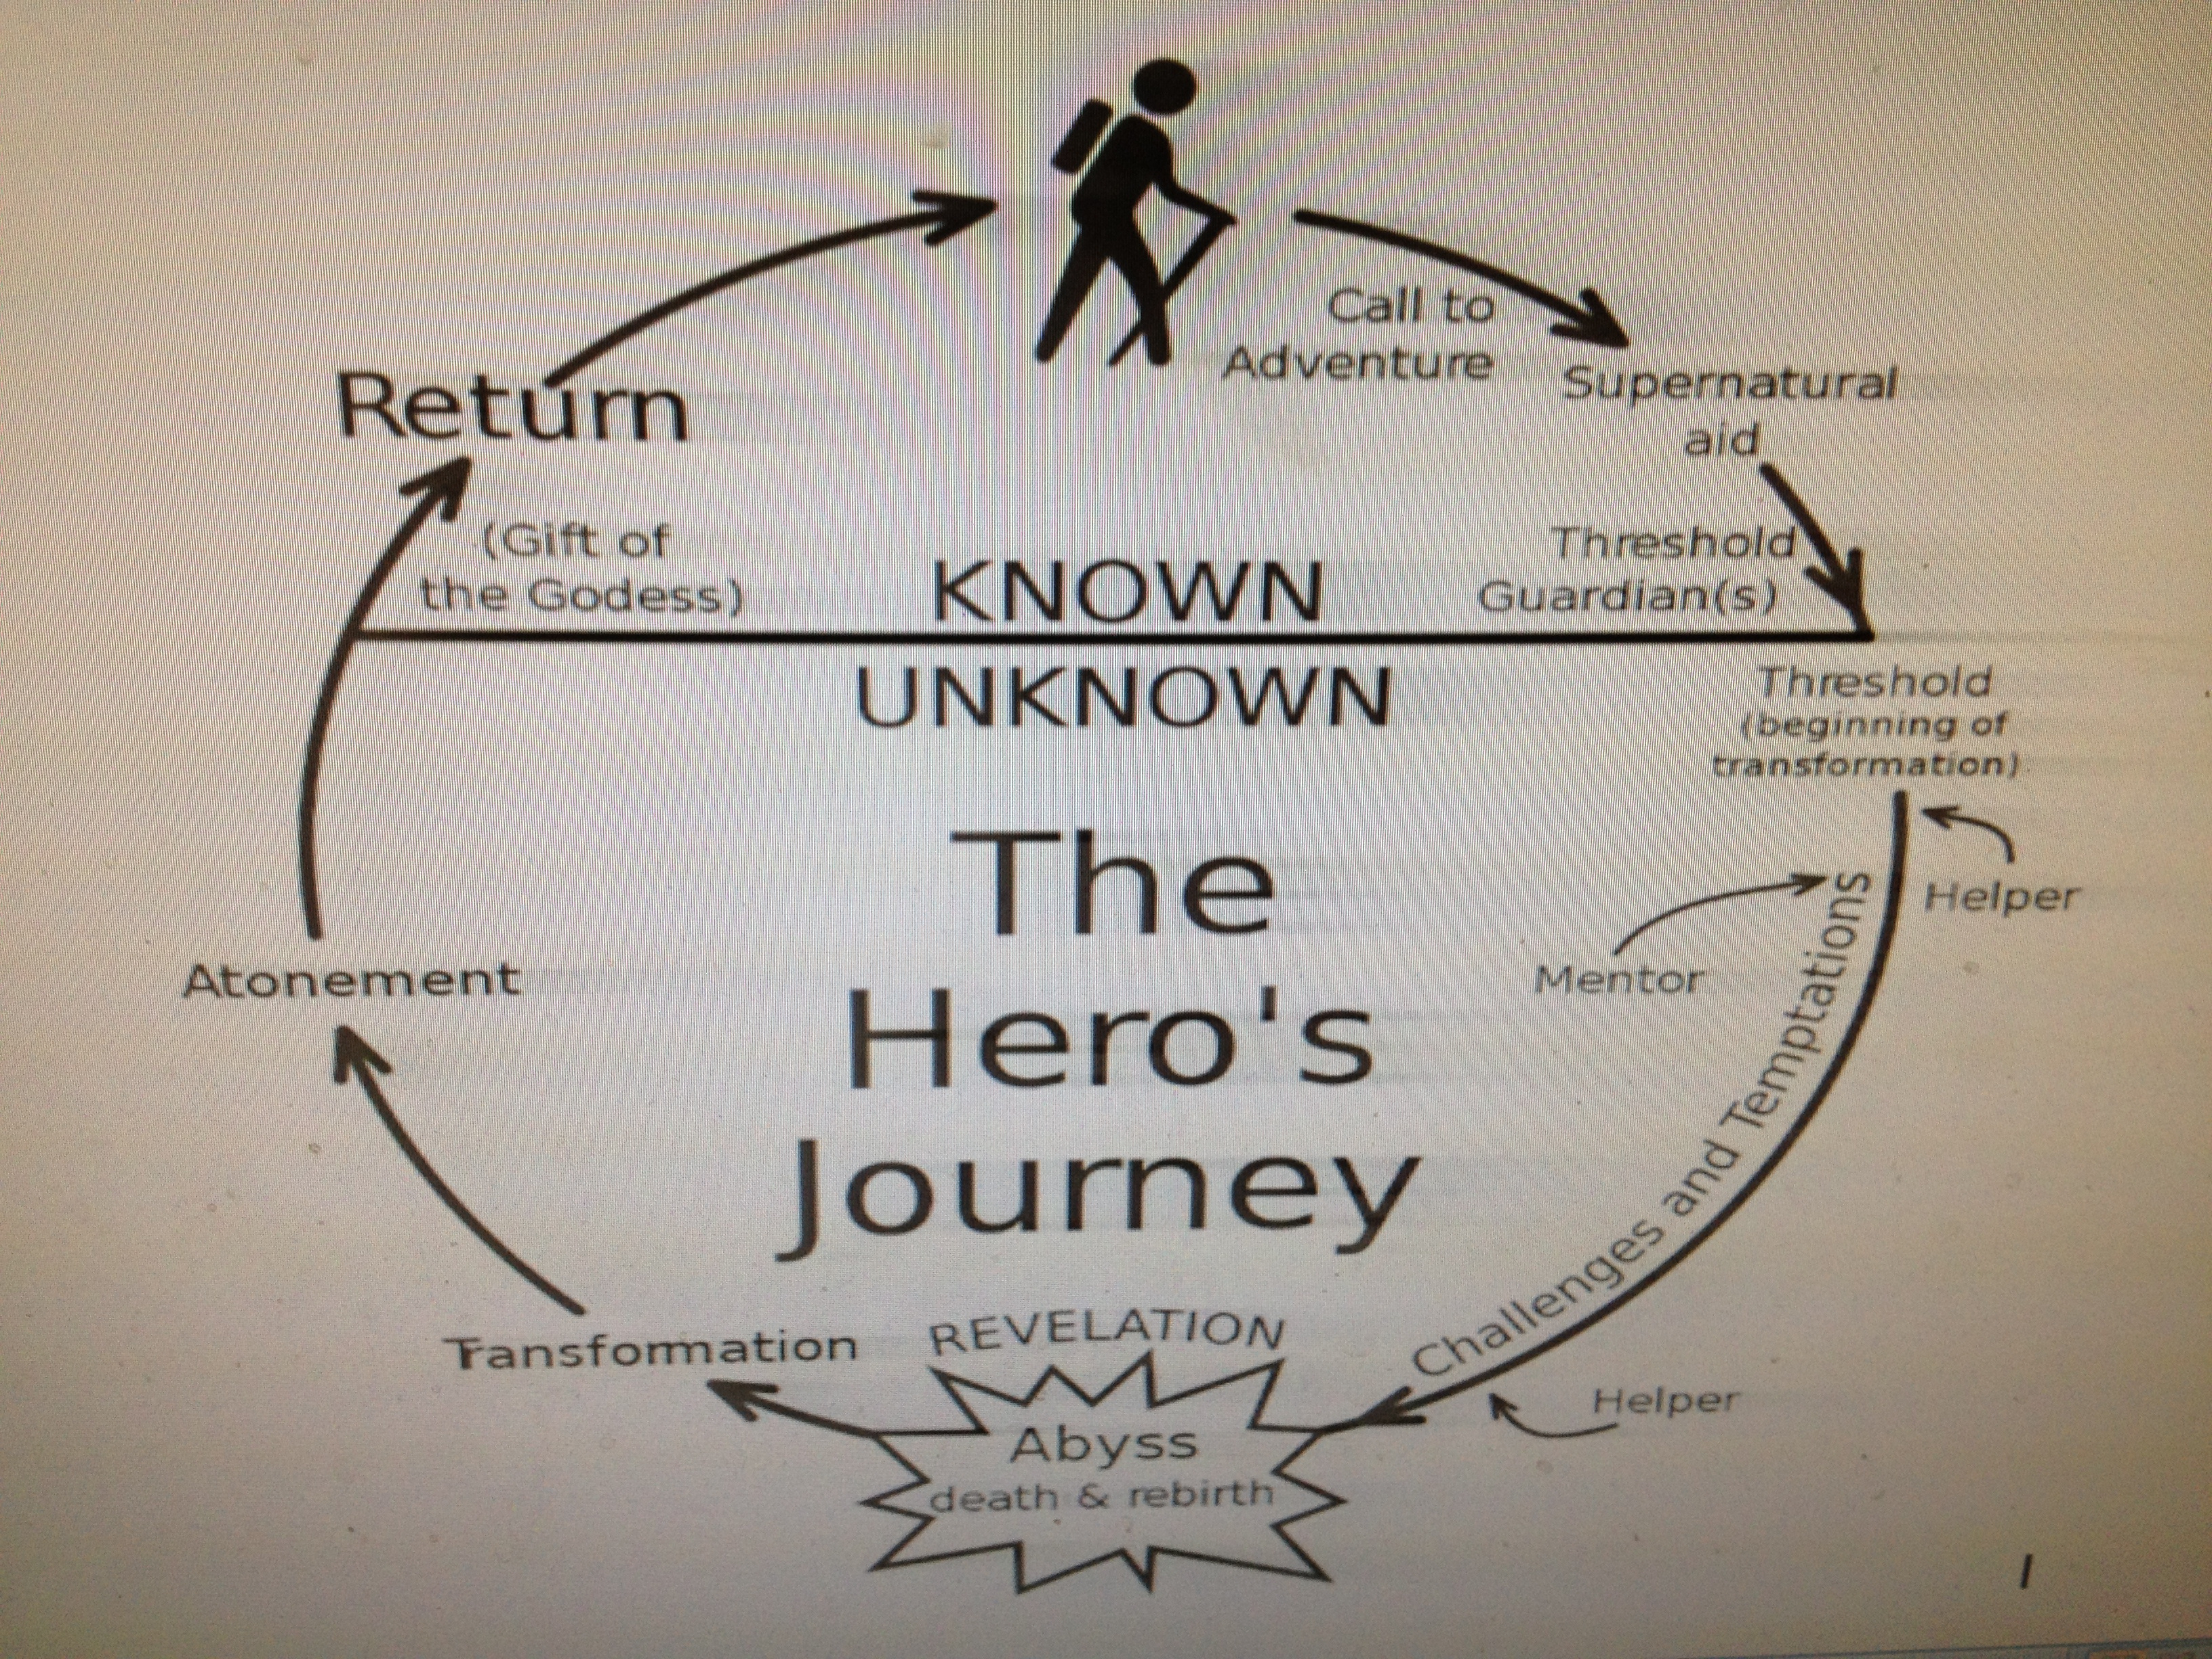 Handout Illustrated 10 Step Heroic Journey Diagram